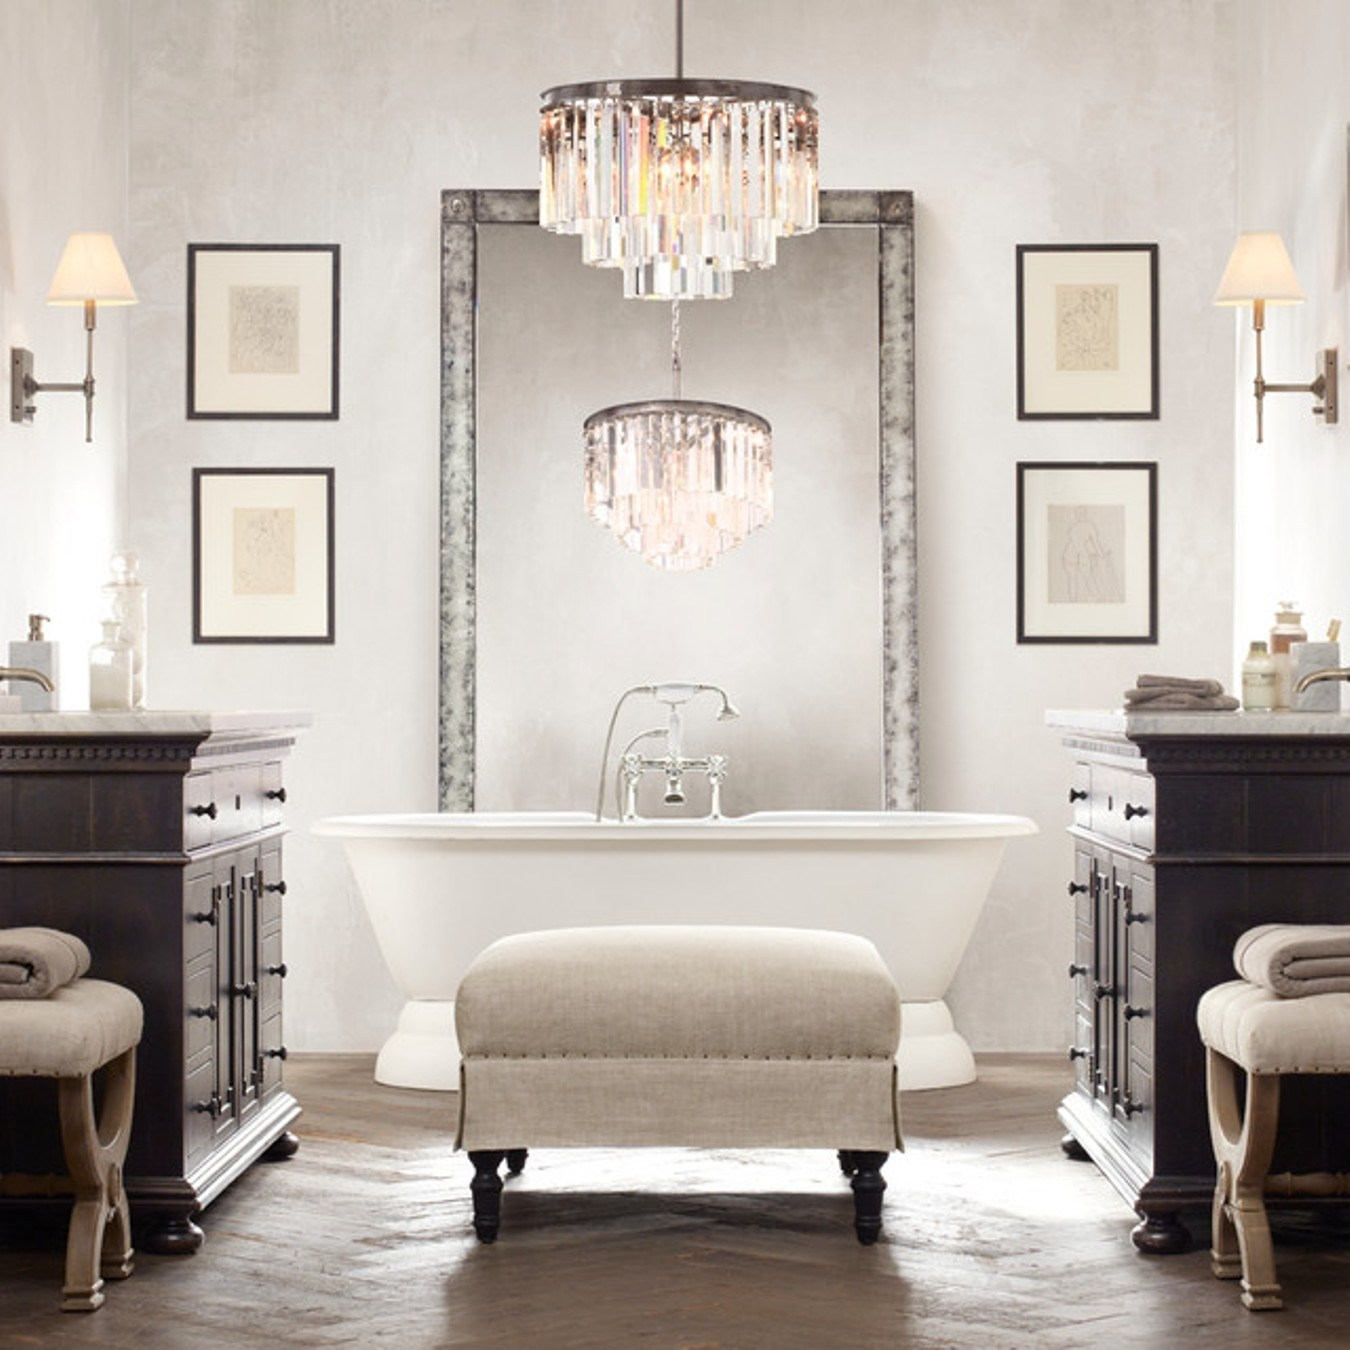 Modern Bathroom Bathroom Chandeliers Striking Small Decorative Within Chandelier In The Bathroom (Image 15 of 15)